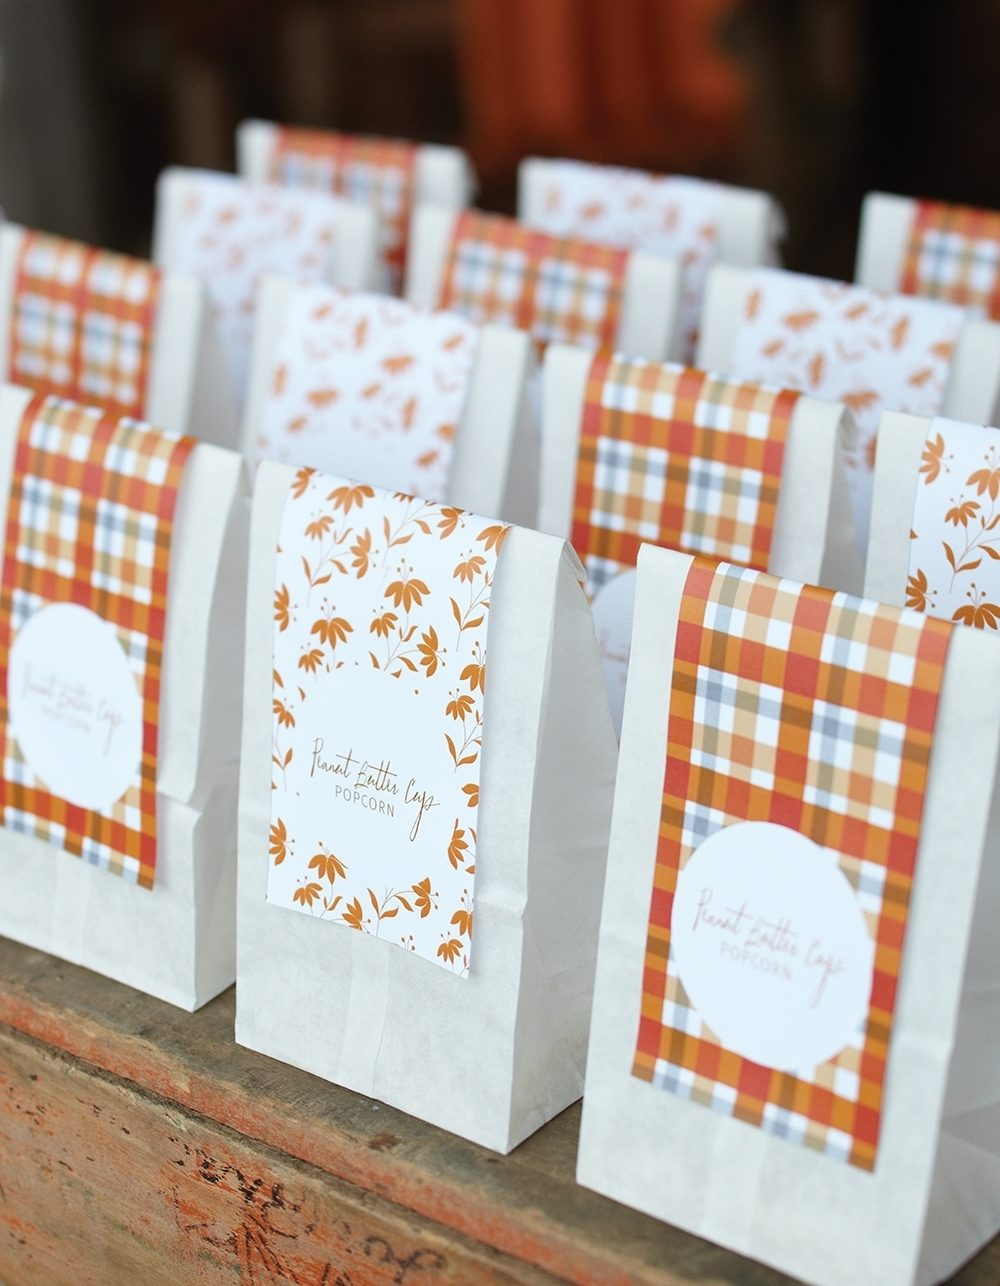 Peanut Butter Cup Popcorn is served in decorated bags on a treat table at a casual outdoor fall party.